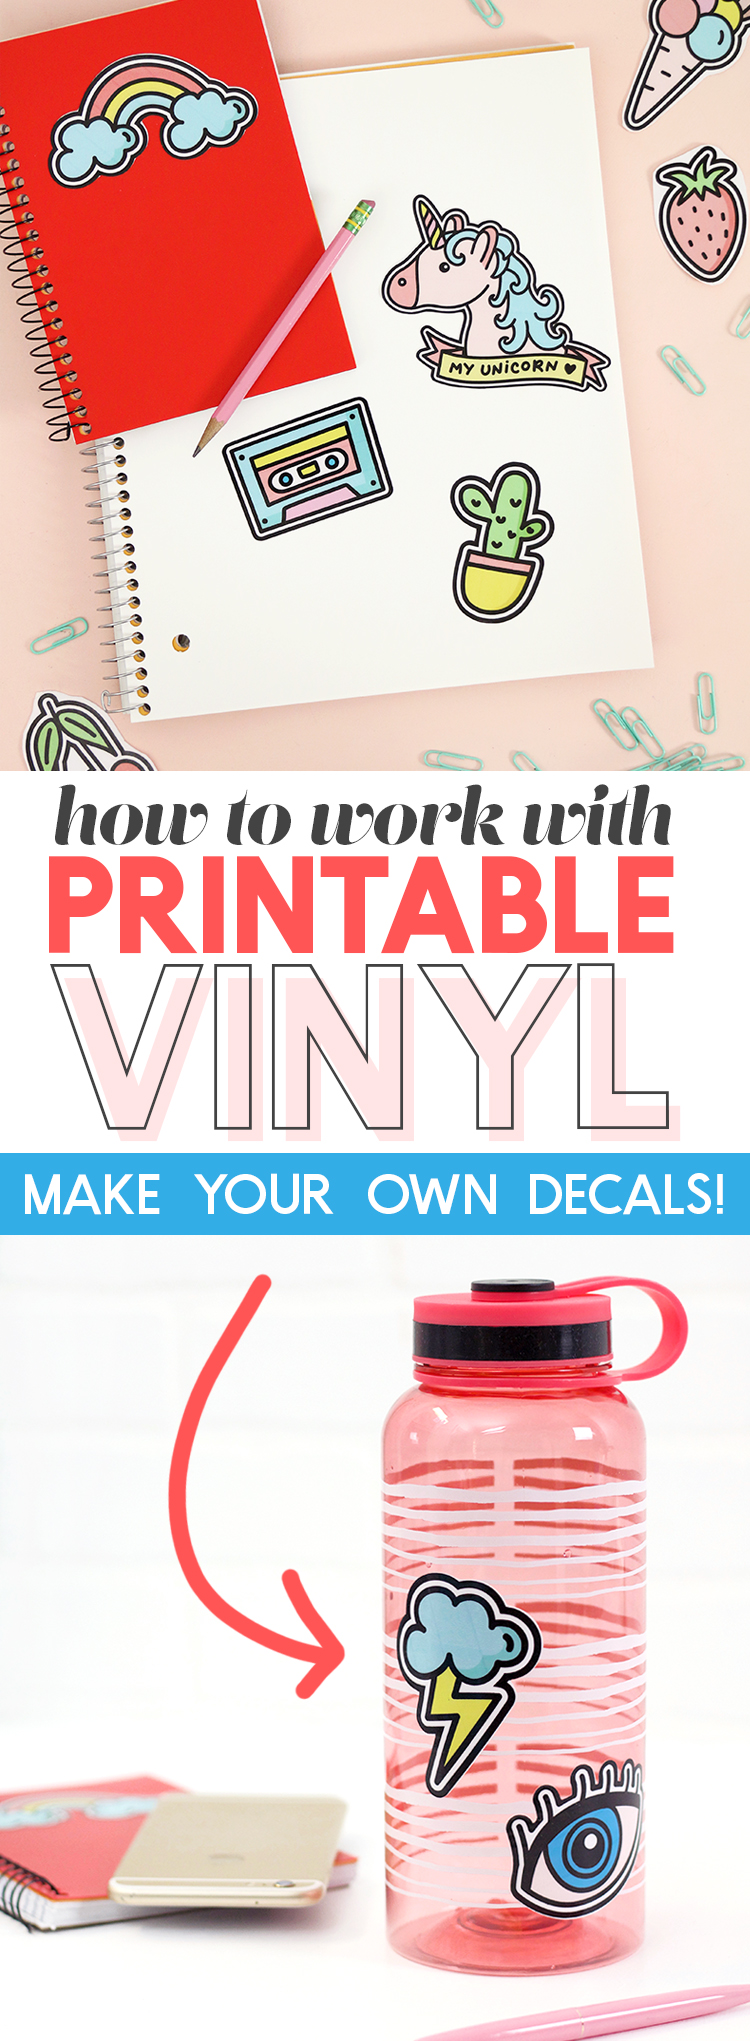 Witty image throughout printable vinyl decals